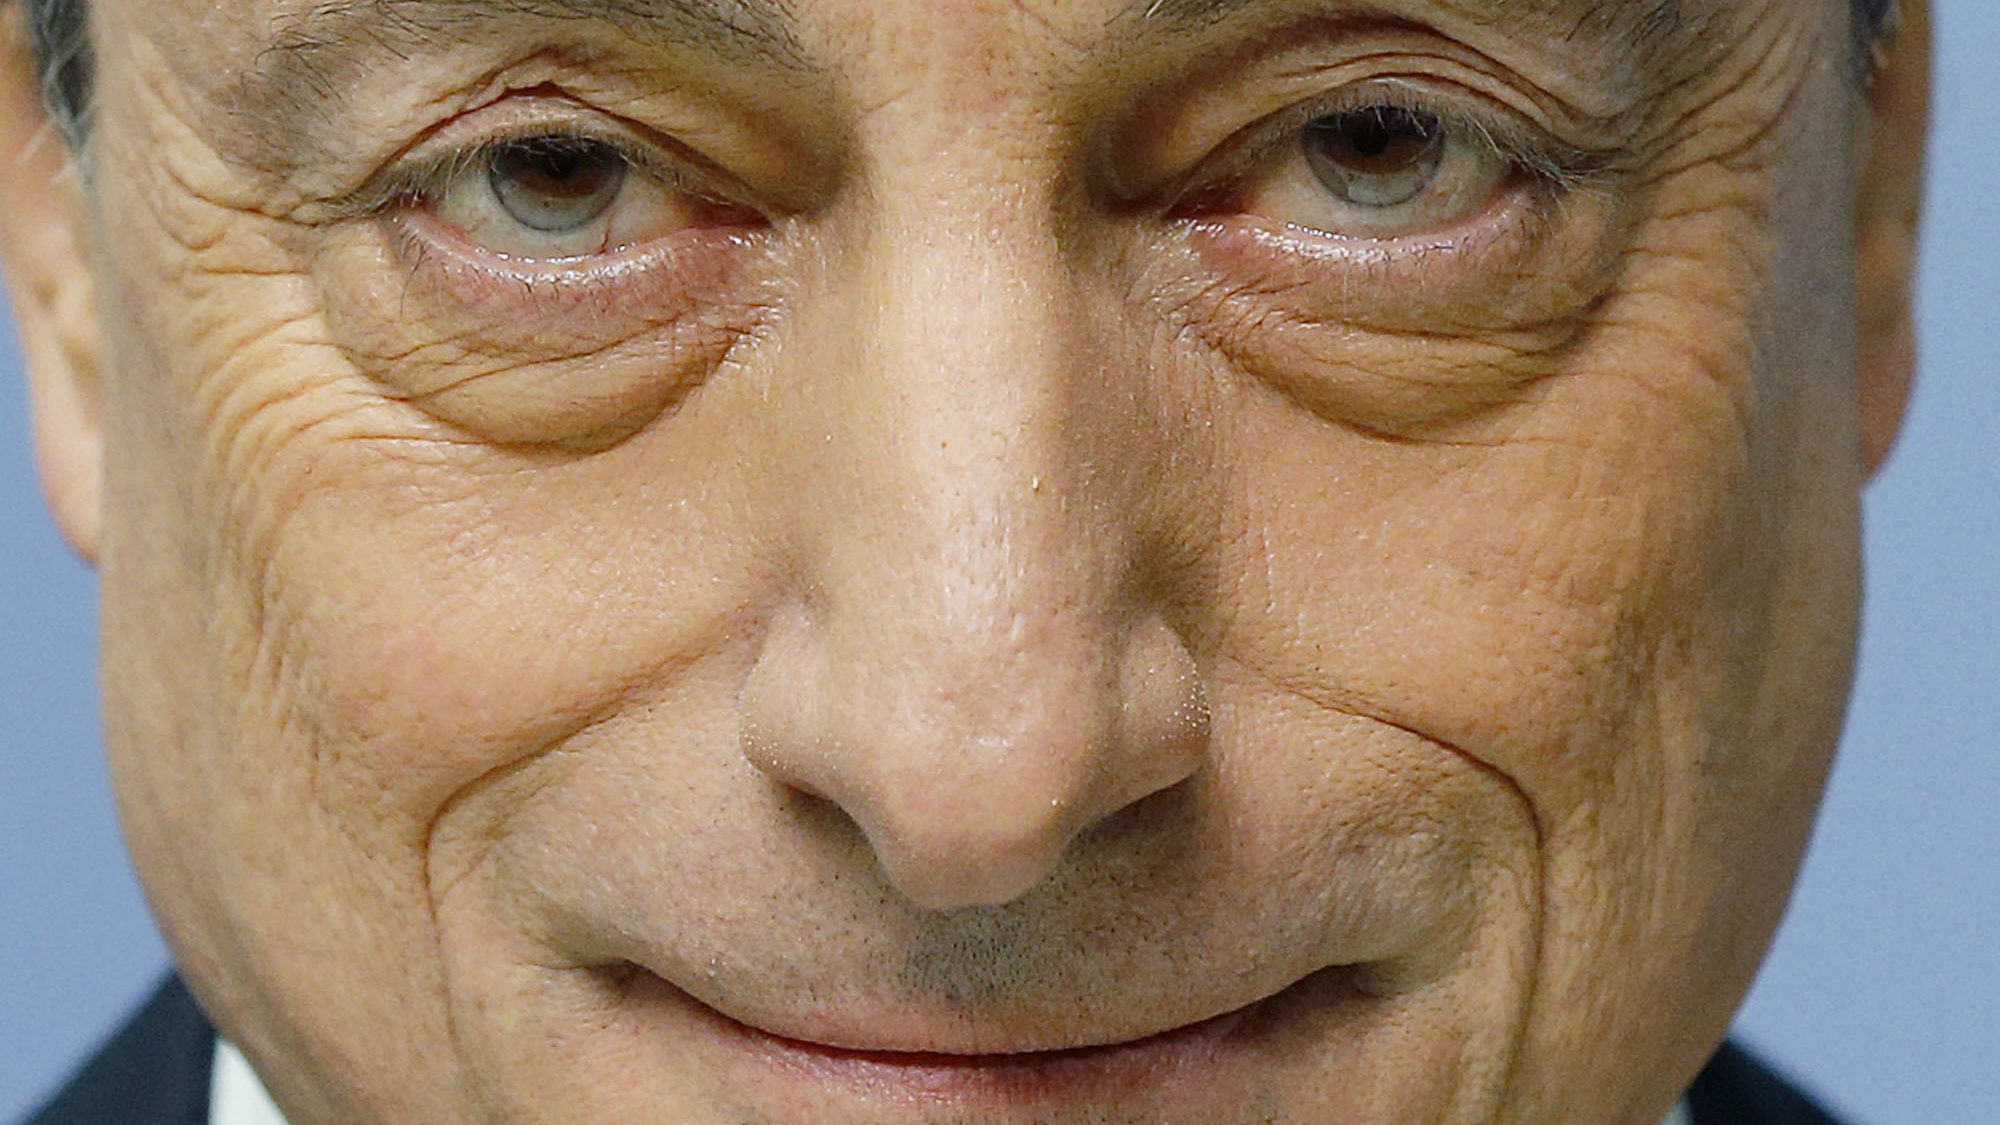 President of European Central Bank Mario Draghi waits for the beginning of a news conference in Frankfurt, Germany, Thursday, Jan. 22, 2015, following a meeting of the ECB governing council. (AP Photo/Michael Probst)